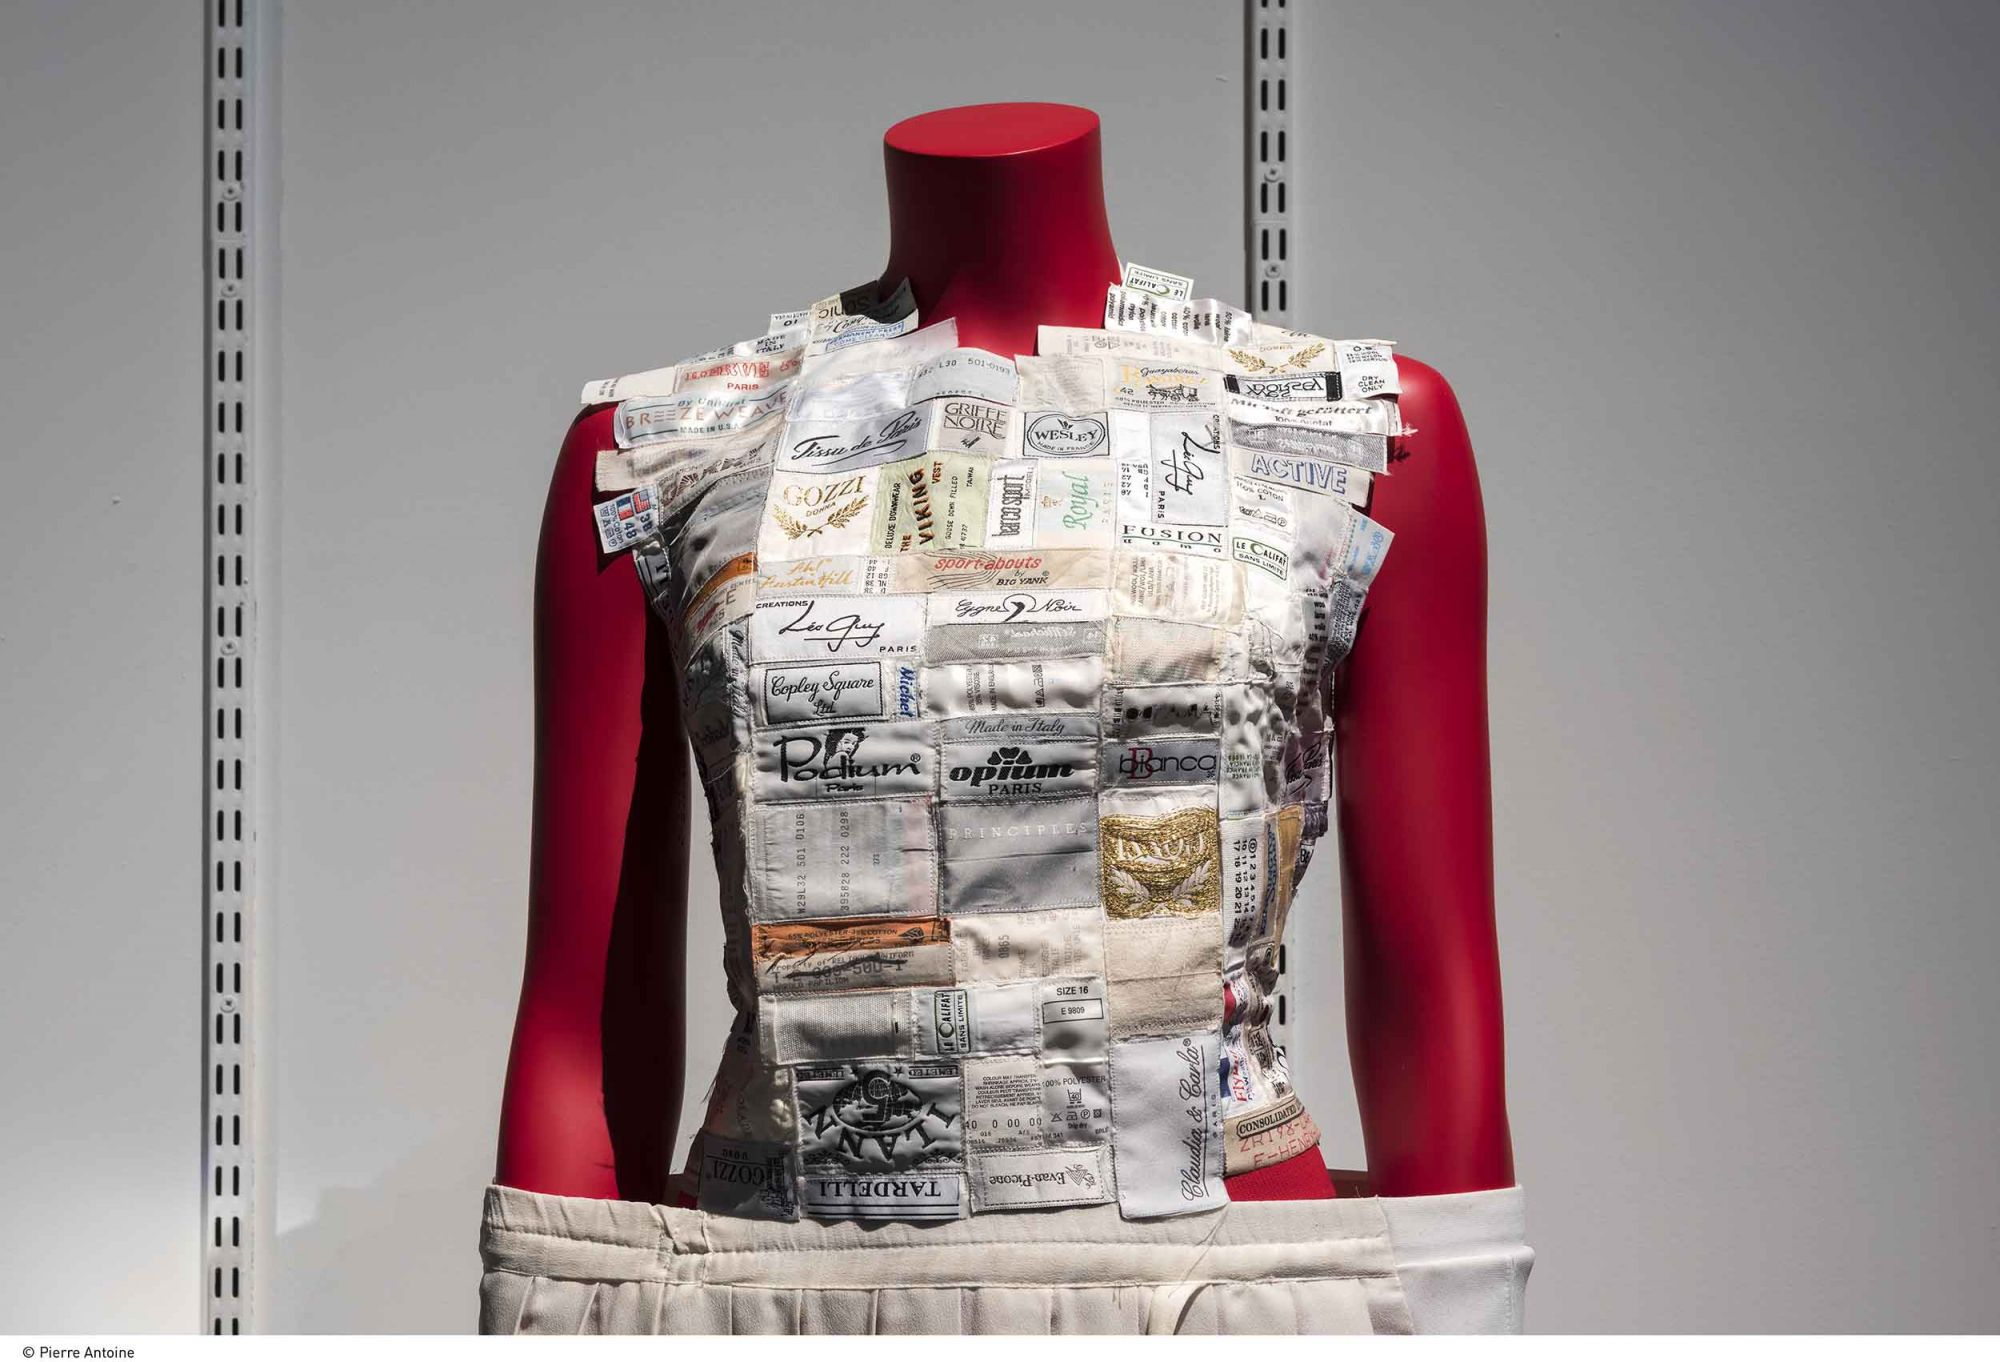 5 Ways Martin Margiela Challenged Fashion